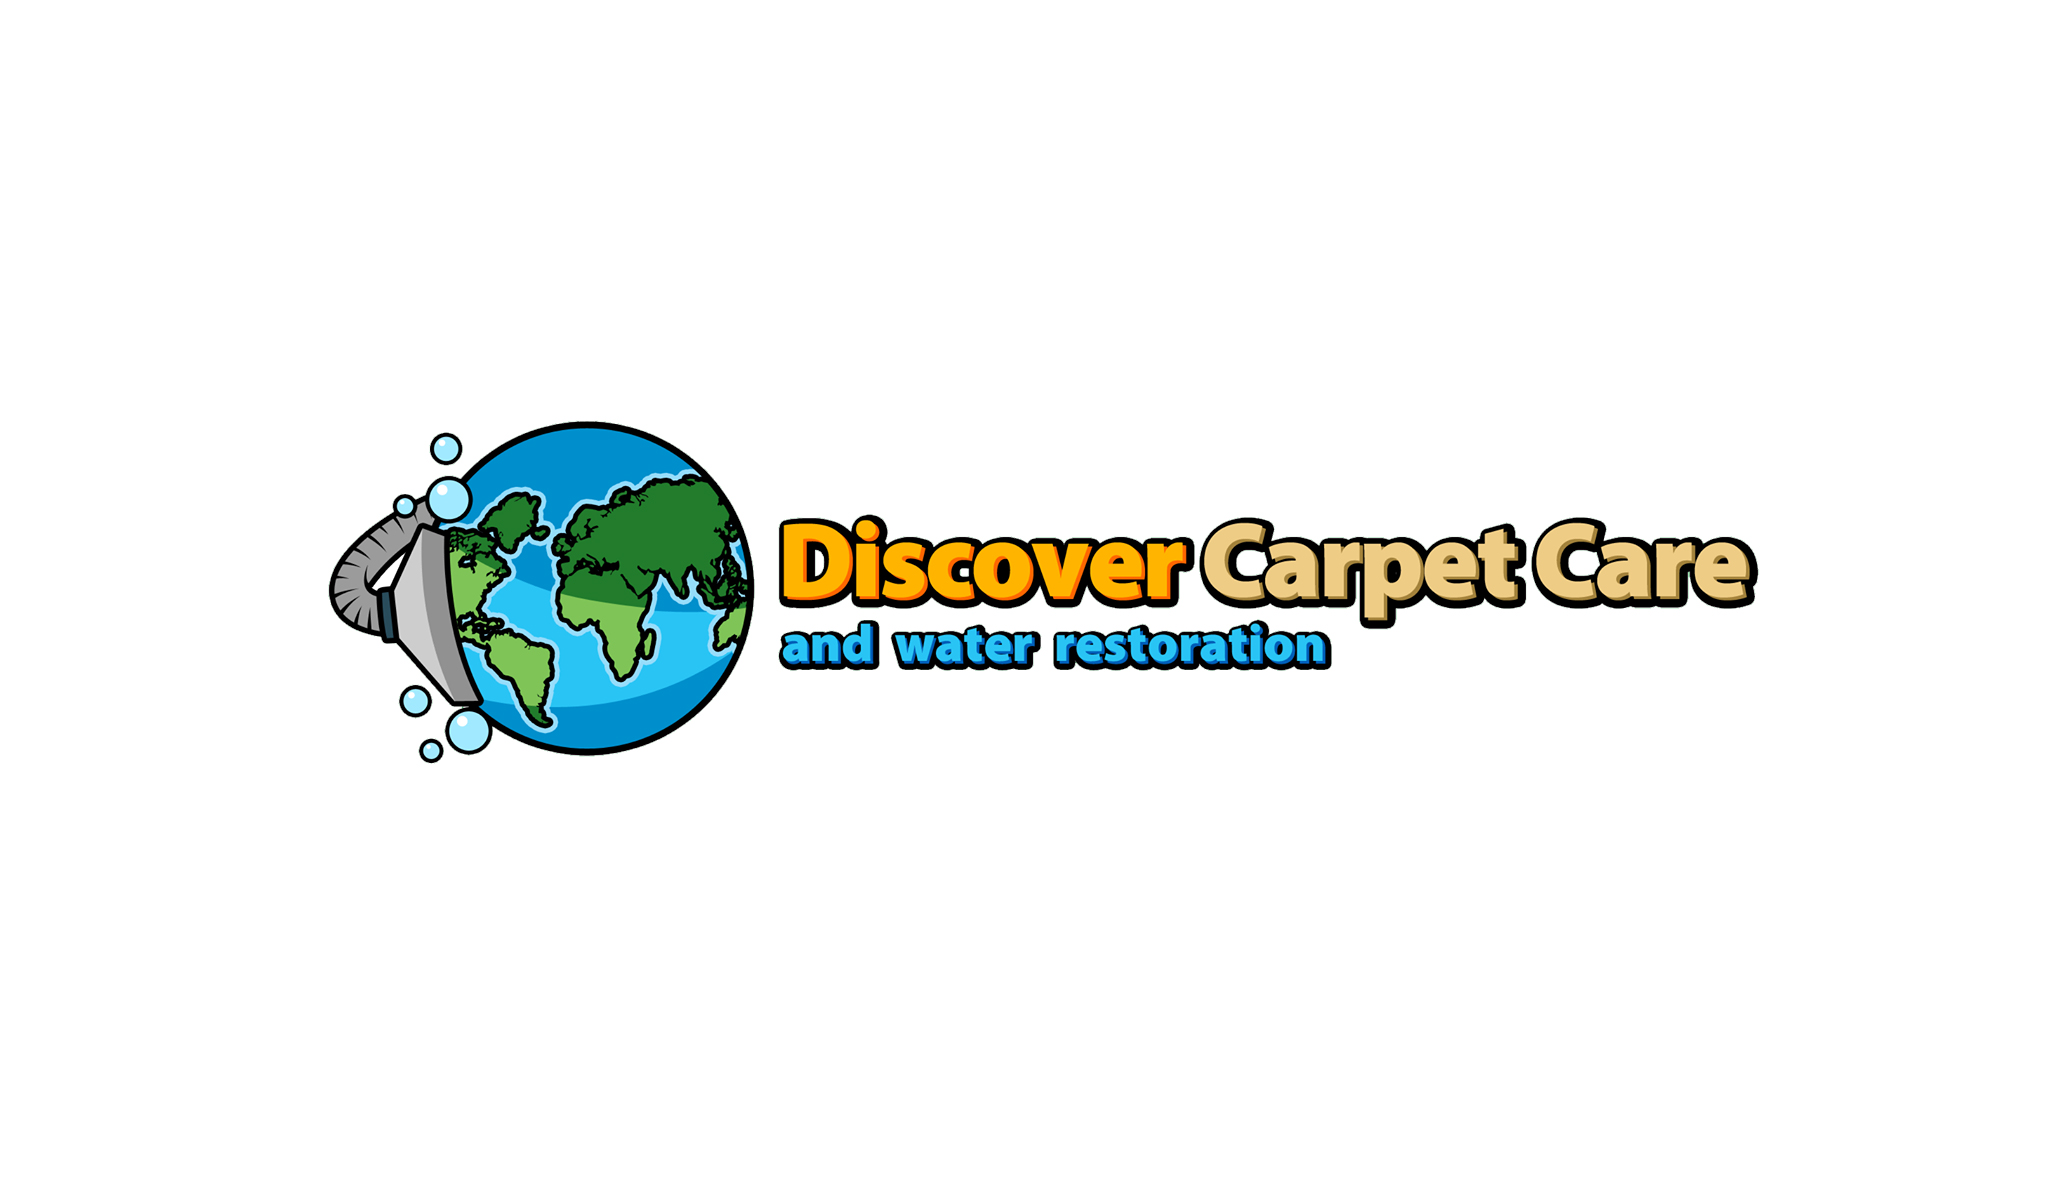 Discover Carpet Care | Carpet Cleaning San Antonio, TX